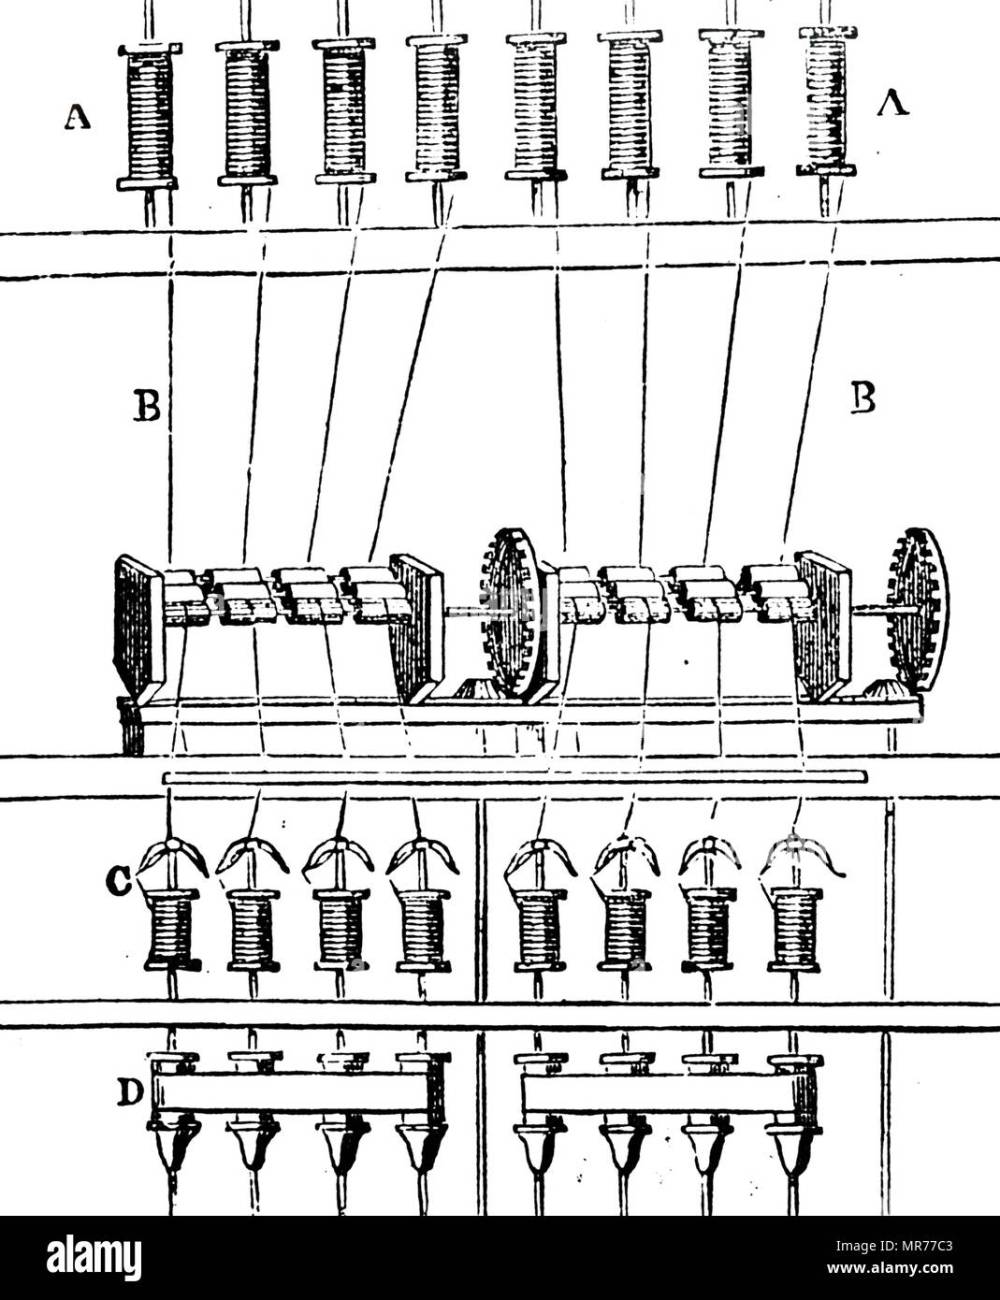 medium resolution of engraving depicting a diagram richard arkwright s water frame richard arkwright 1732 1792 an english inventor and a leading entrepreneur during the early